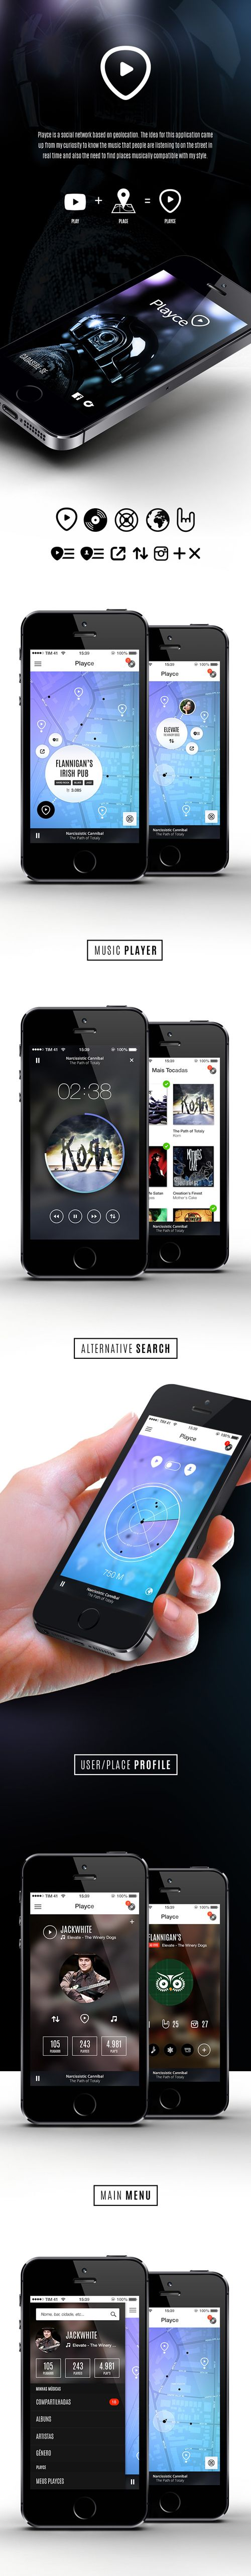 55 Amazing Mobile App UI Designs with Ultimate User Experience - 9